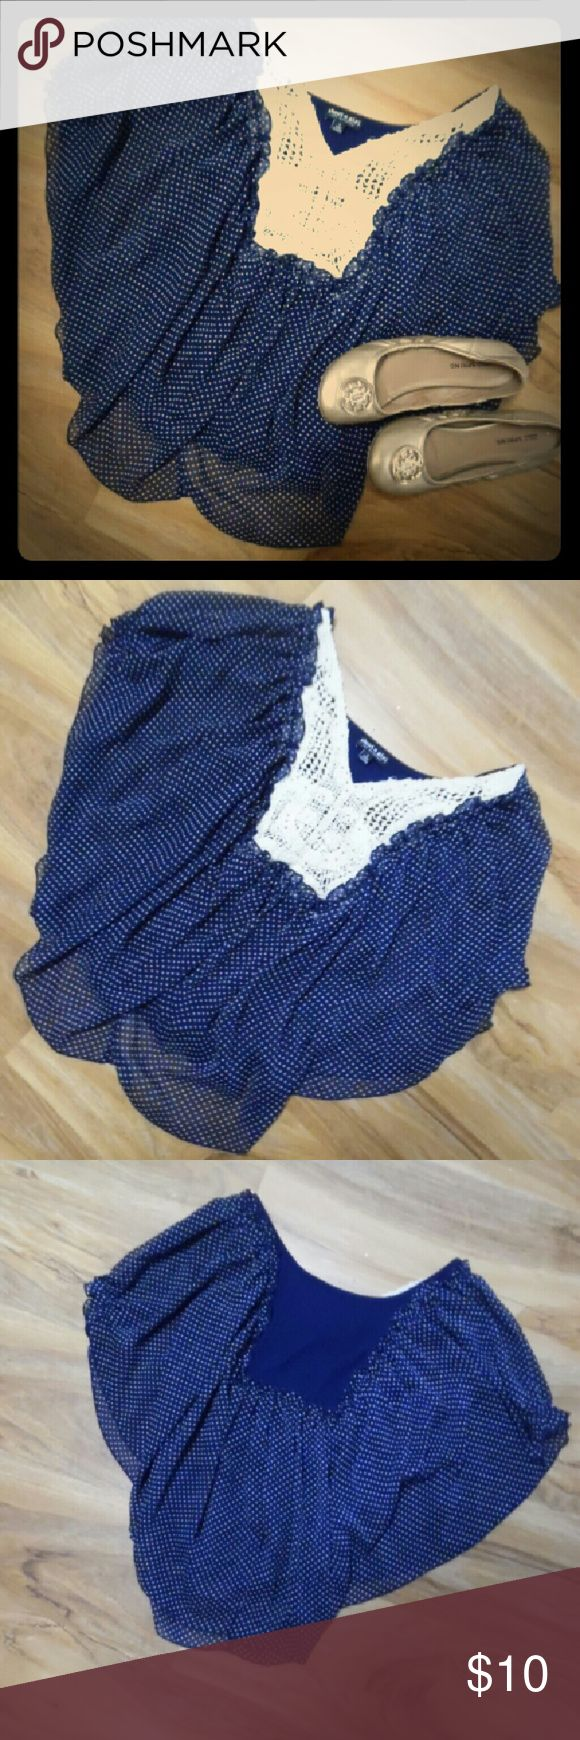 Batwing top About a girl short sleeve bat wing top sz small. Navy blue with white polka dots. Crochet detail on front with some small gold beads. Somewhat sheer but has a camisole underneath attached about a girl Tops Blouses